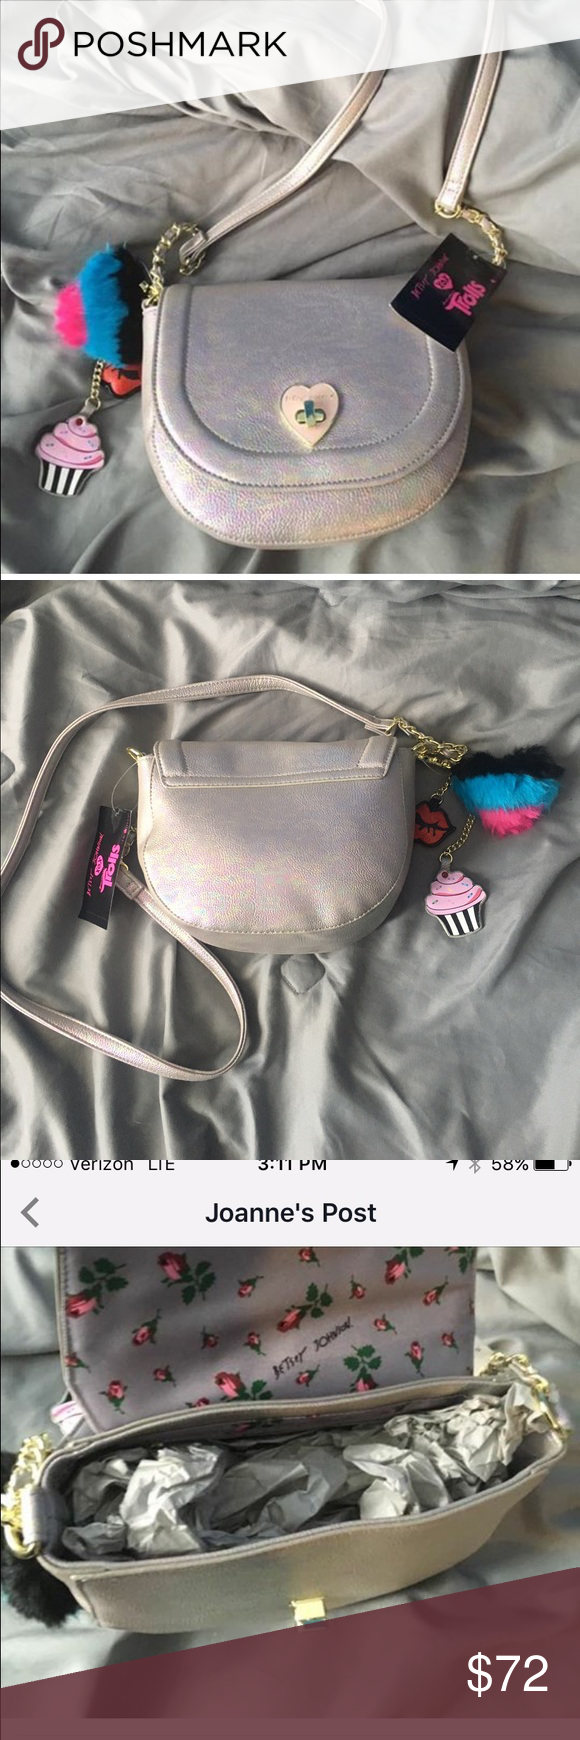 Betsey Johnson Trolls XOX Rainbow Crossbody.  NWT SO CUTE!  Betsey Johnson Rainbow Crossbody - Trolls XOX Collection.  Brand new with tags!😍😍 Betsey Johnson Bags Crossbody Bags